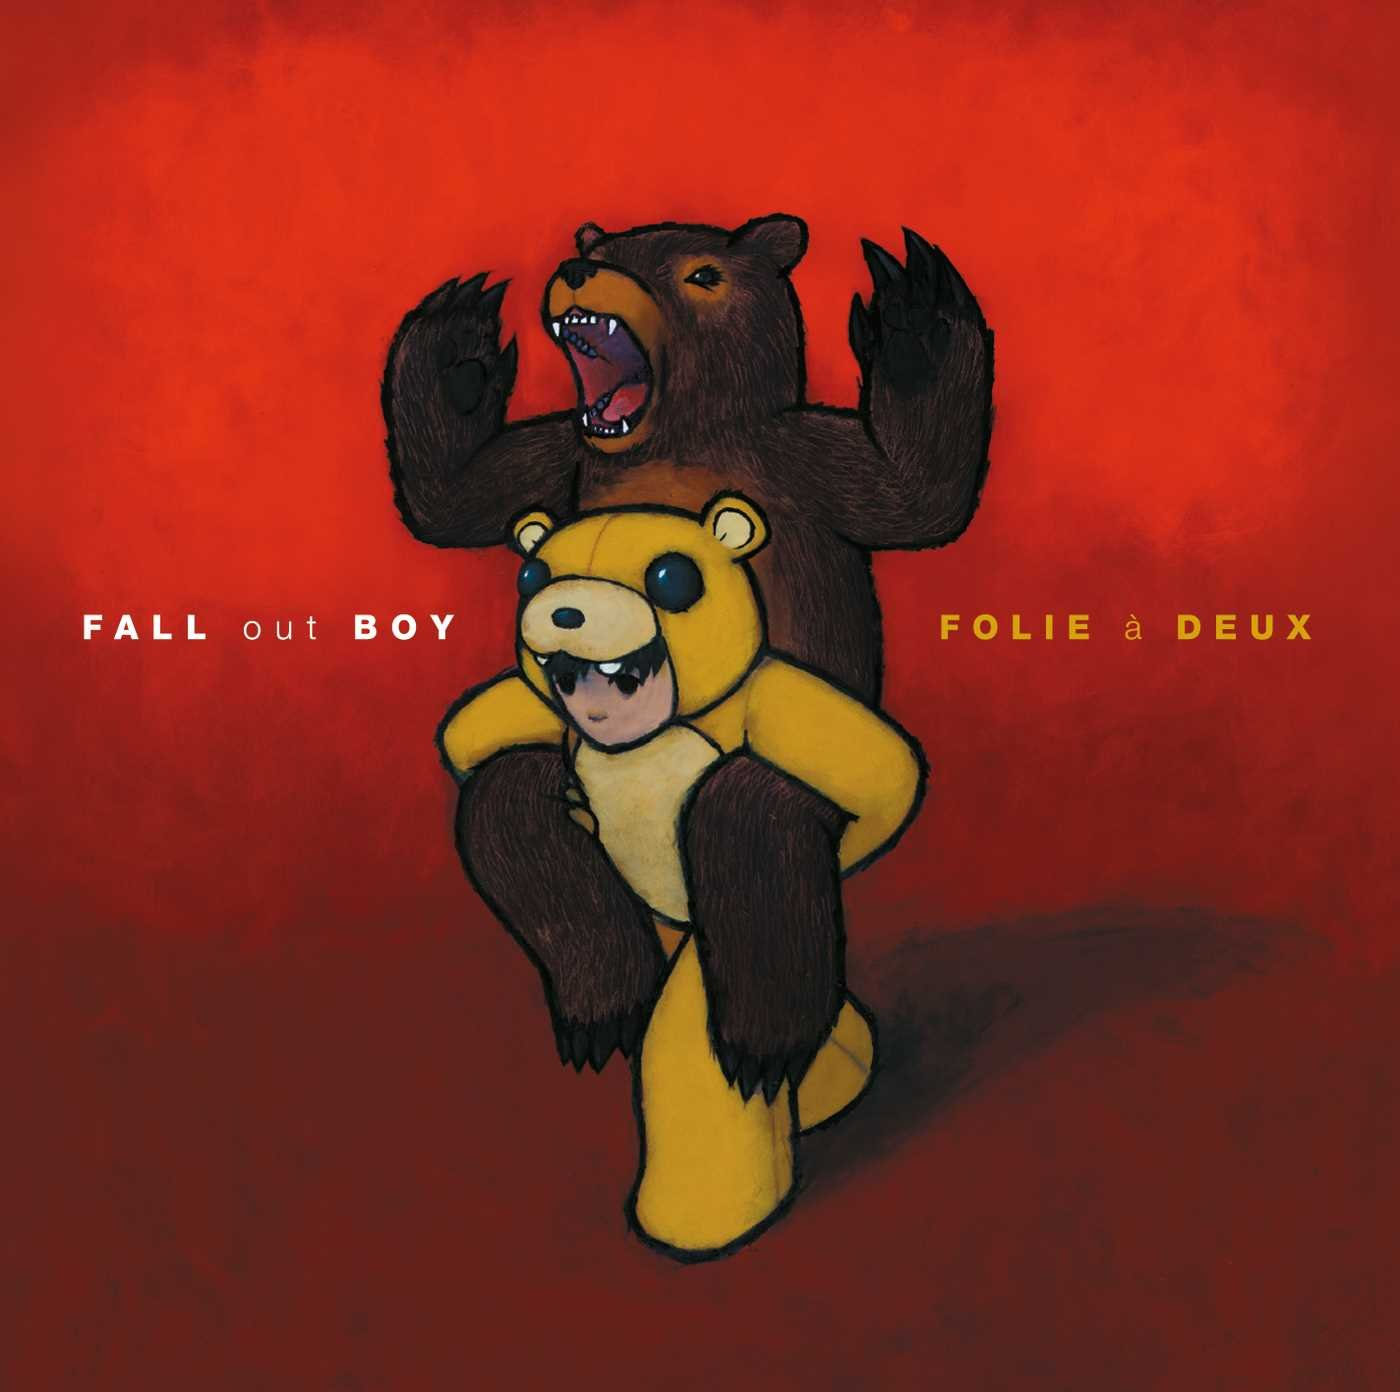 CD : Fall Out Boy - Folie a Deux